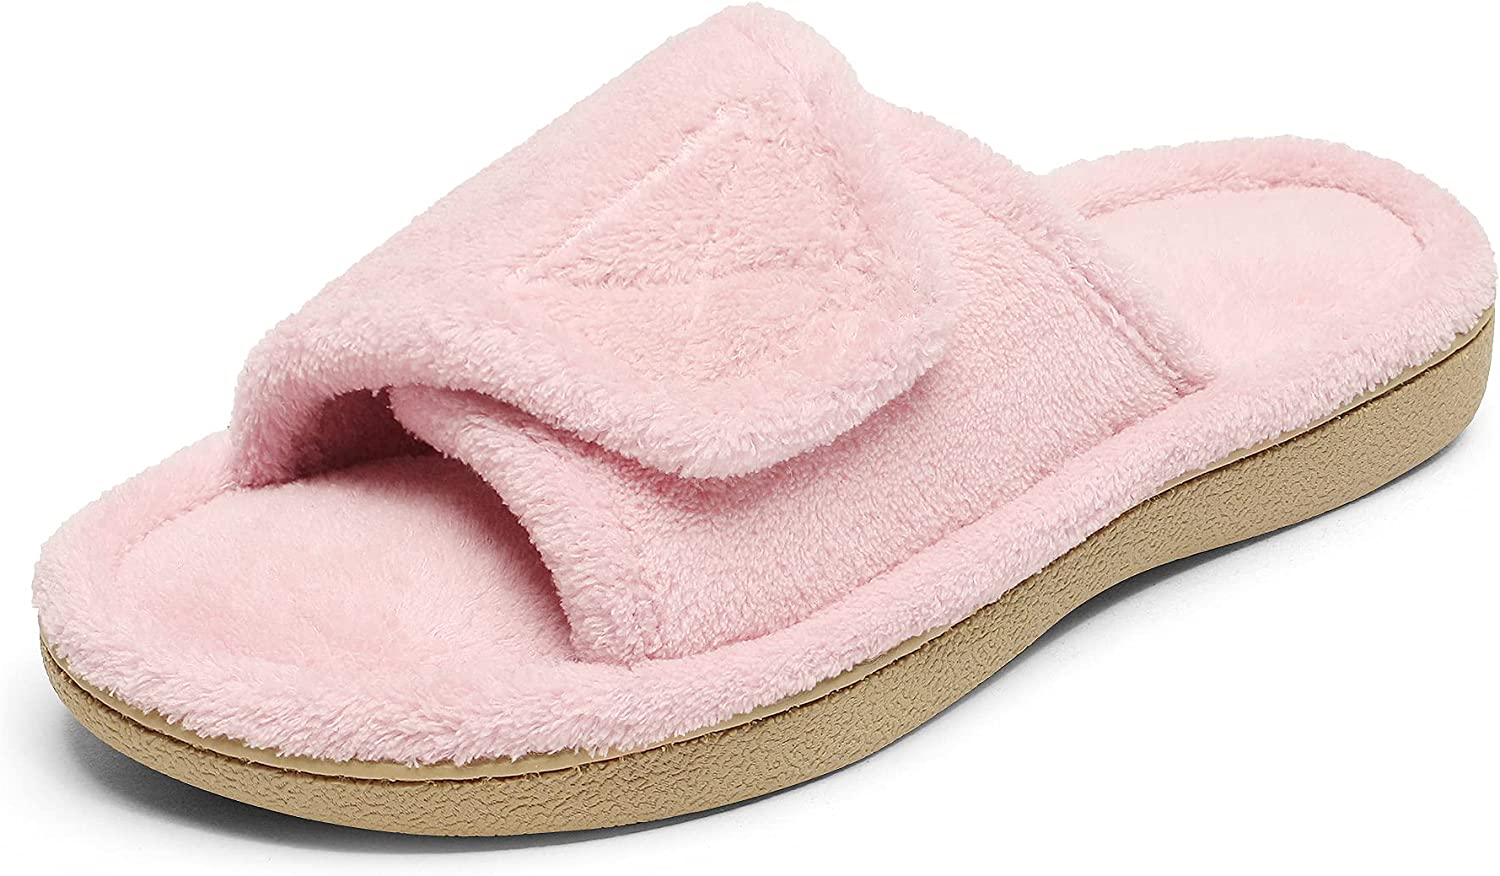 DREAM OFFicial store PAIRS Women's House Memory Slippers wi Fuzzy Form Directly managed store Orthotic